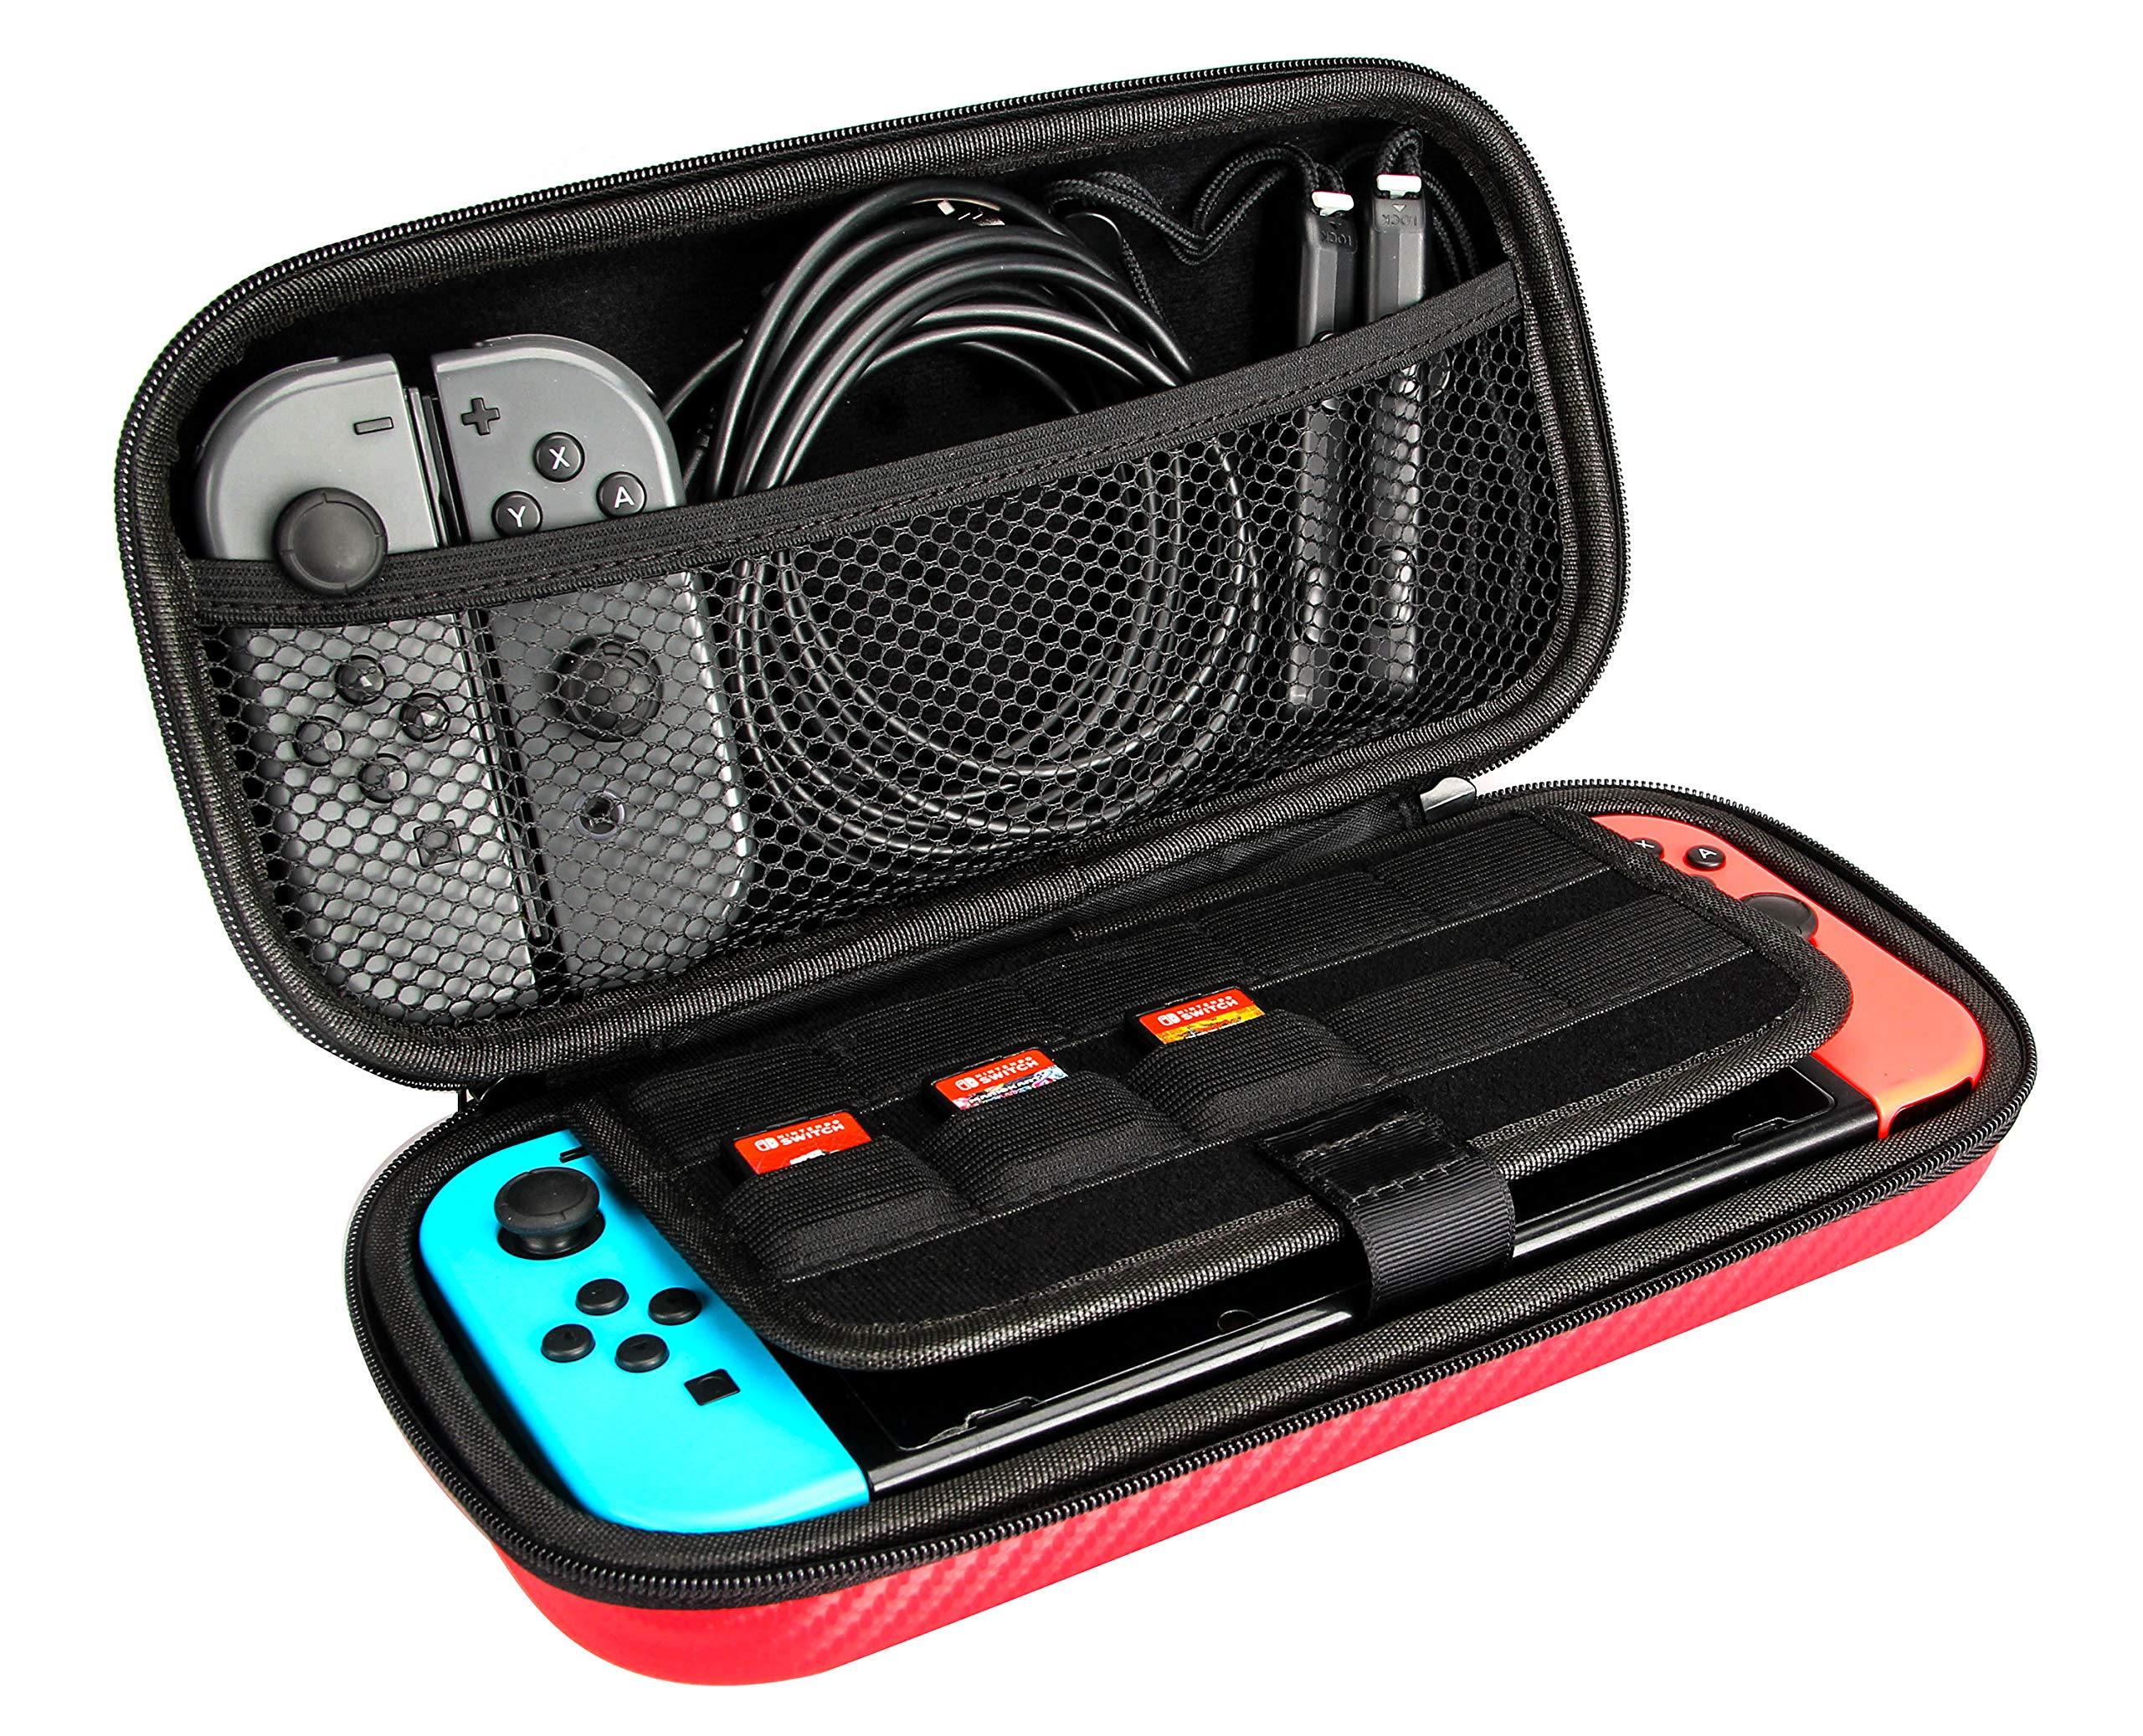 Amazon Basics Carrying Case for Nintendo Switch and Accessories - Red